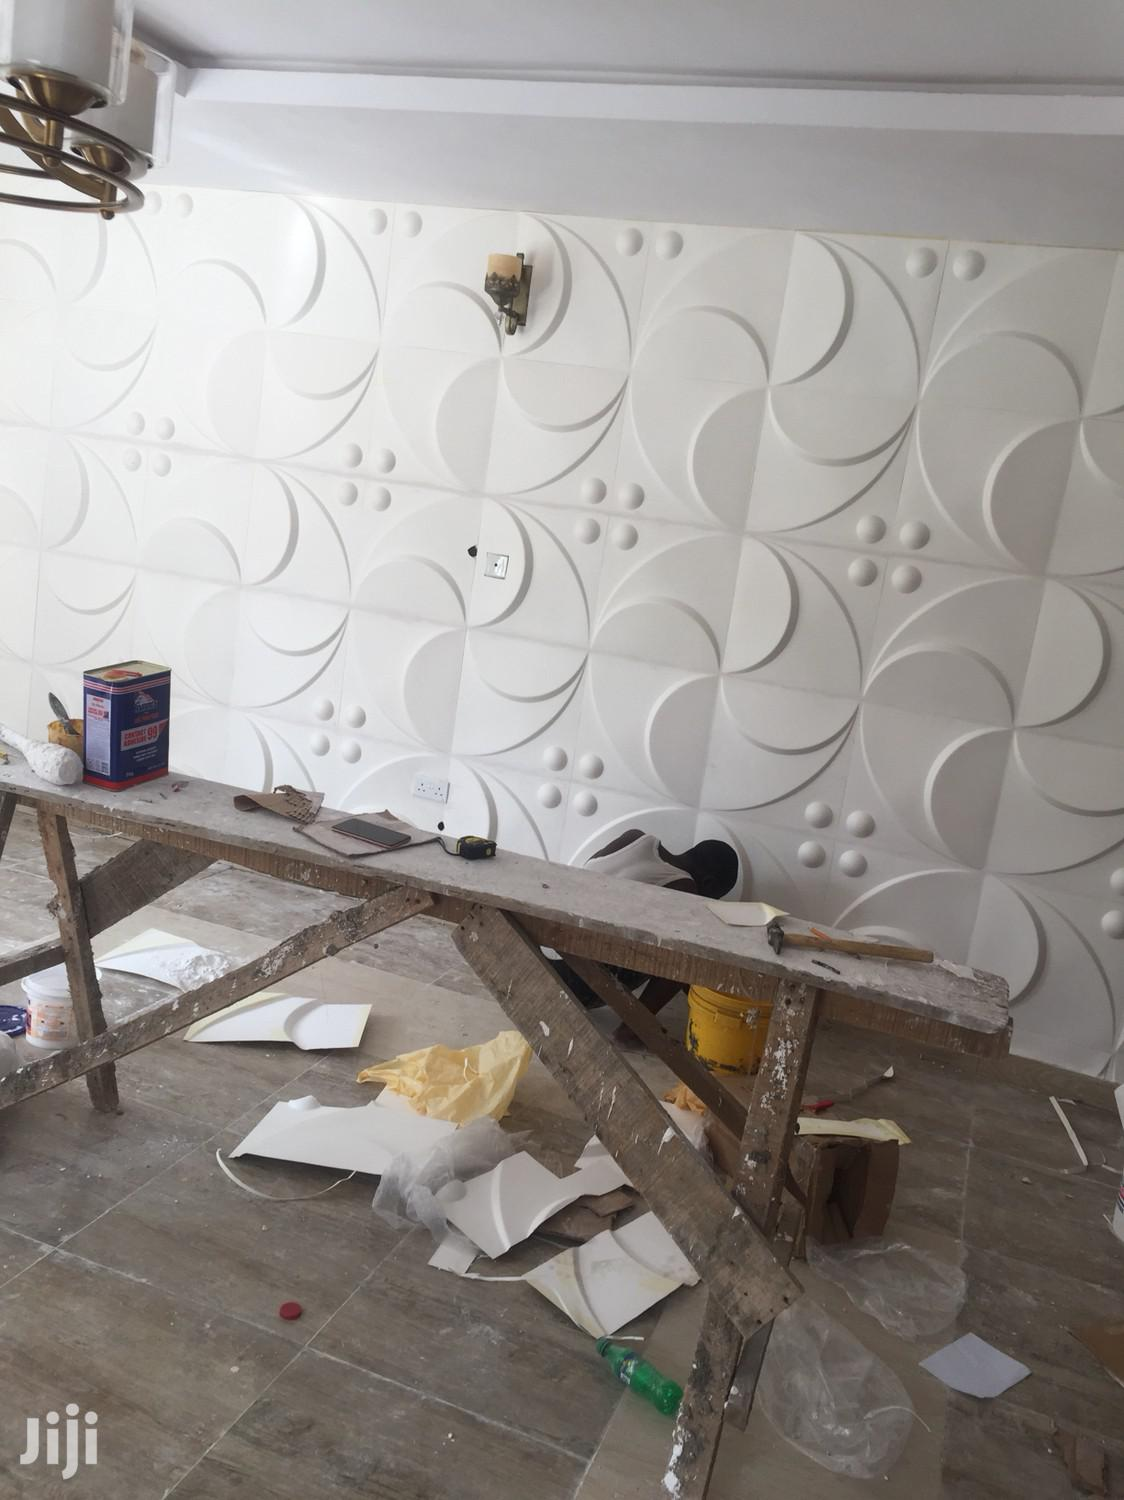 Embuzzed 3D Panels | Home Accessories for sale in Alimosho, Lagos State, Nigeria